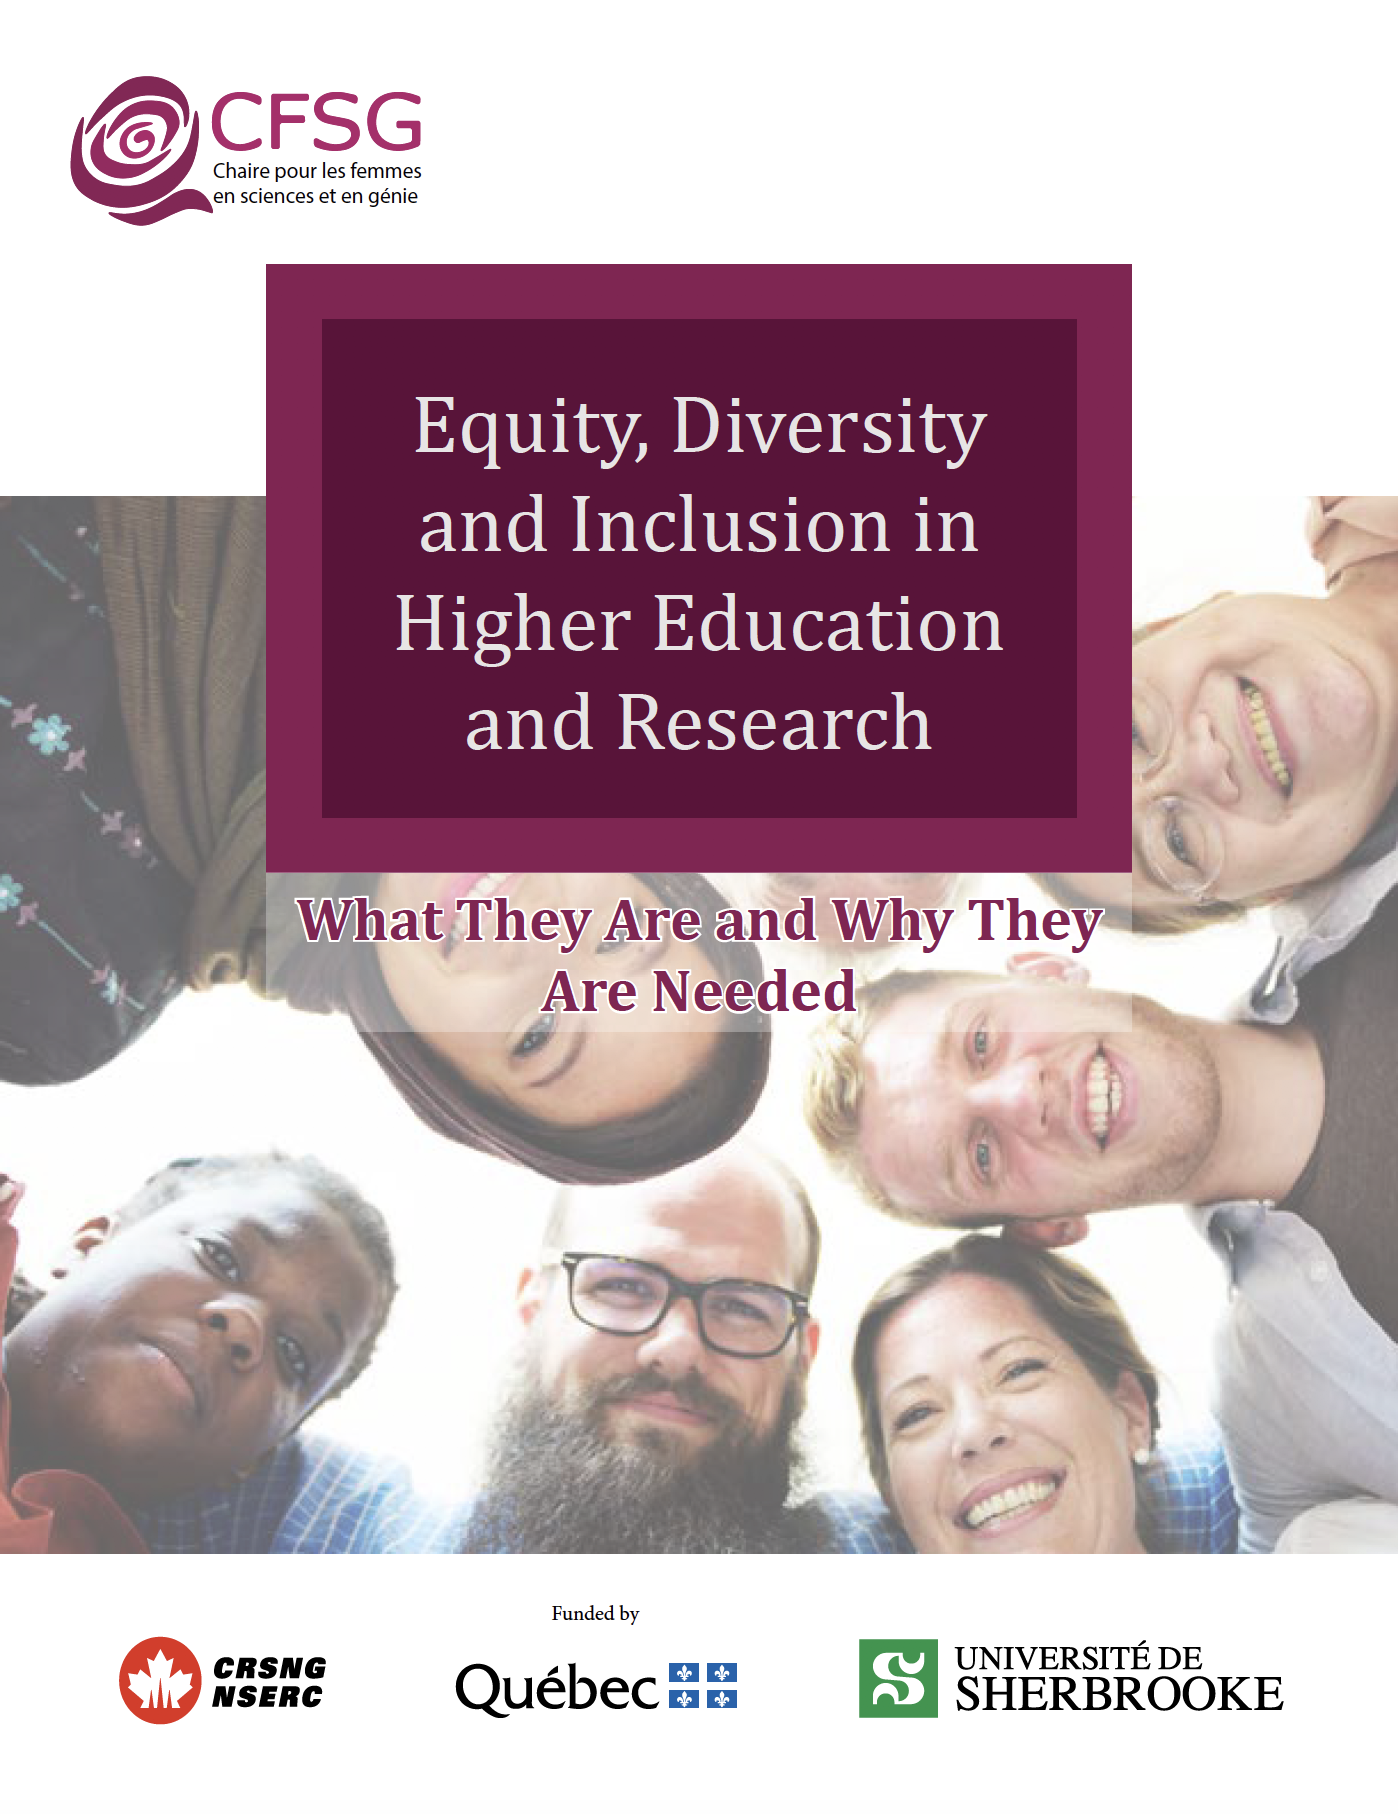 Equity, Diversity and Inclusion in Higher Education and Research: What They Are and Why They Are Needed